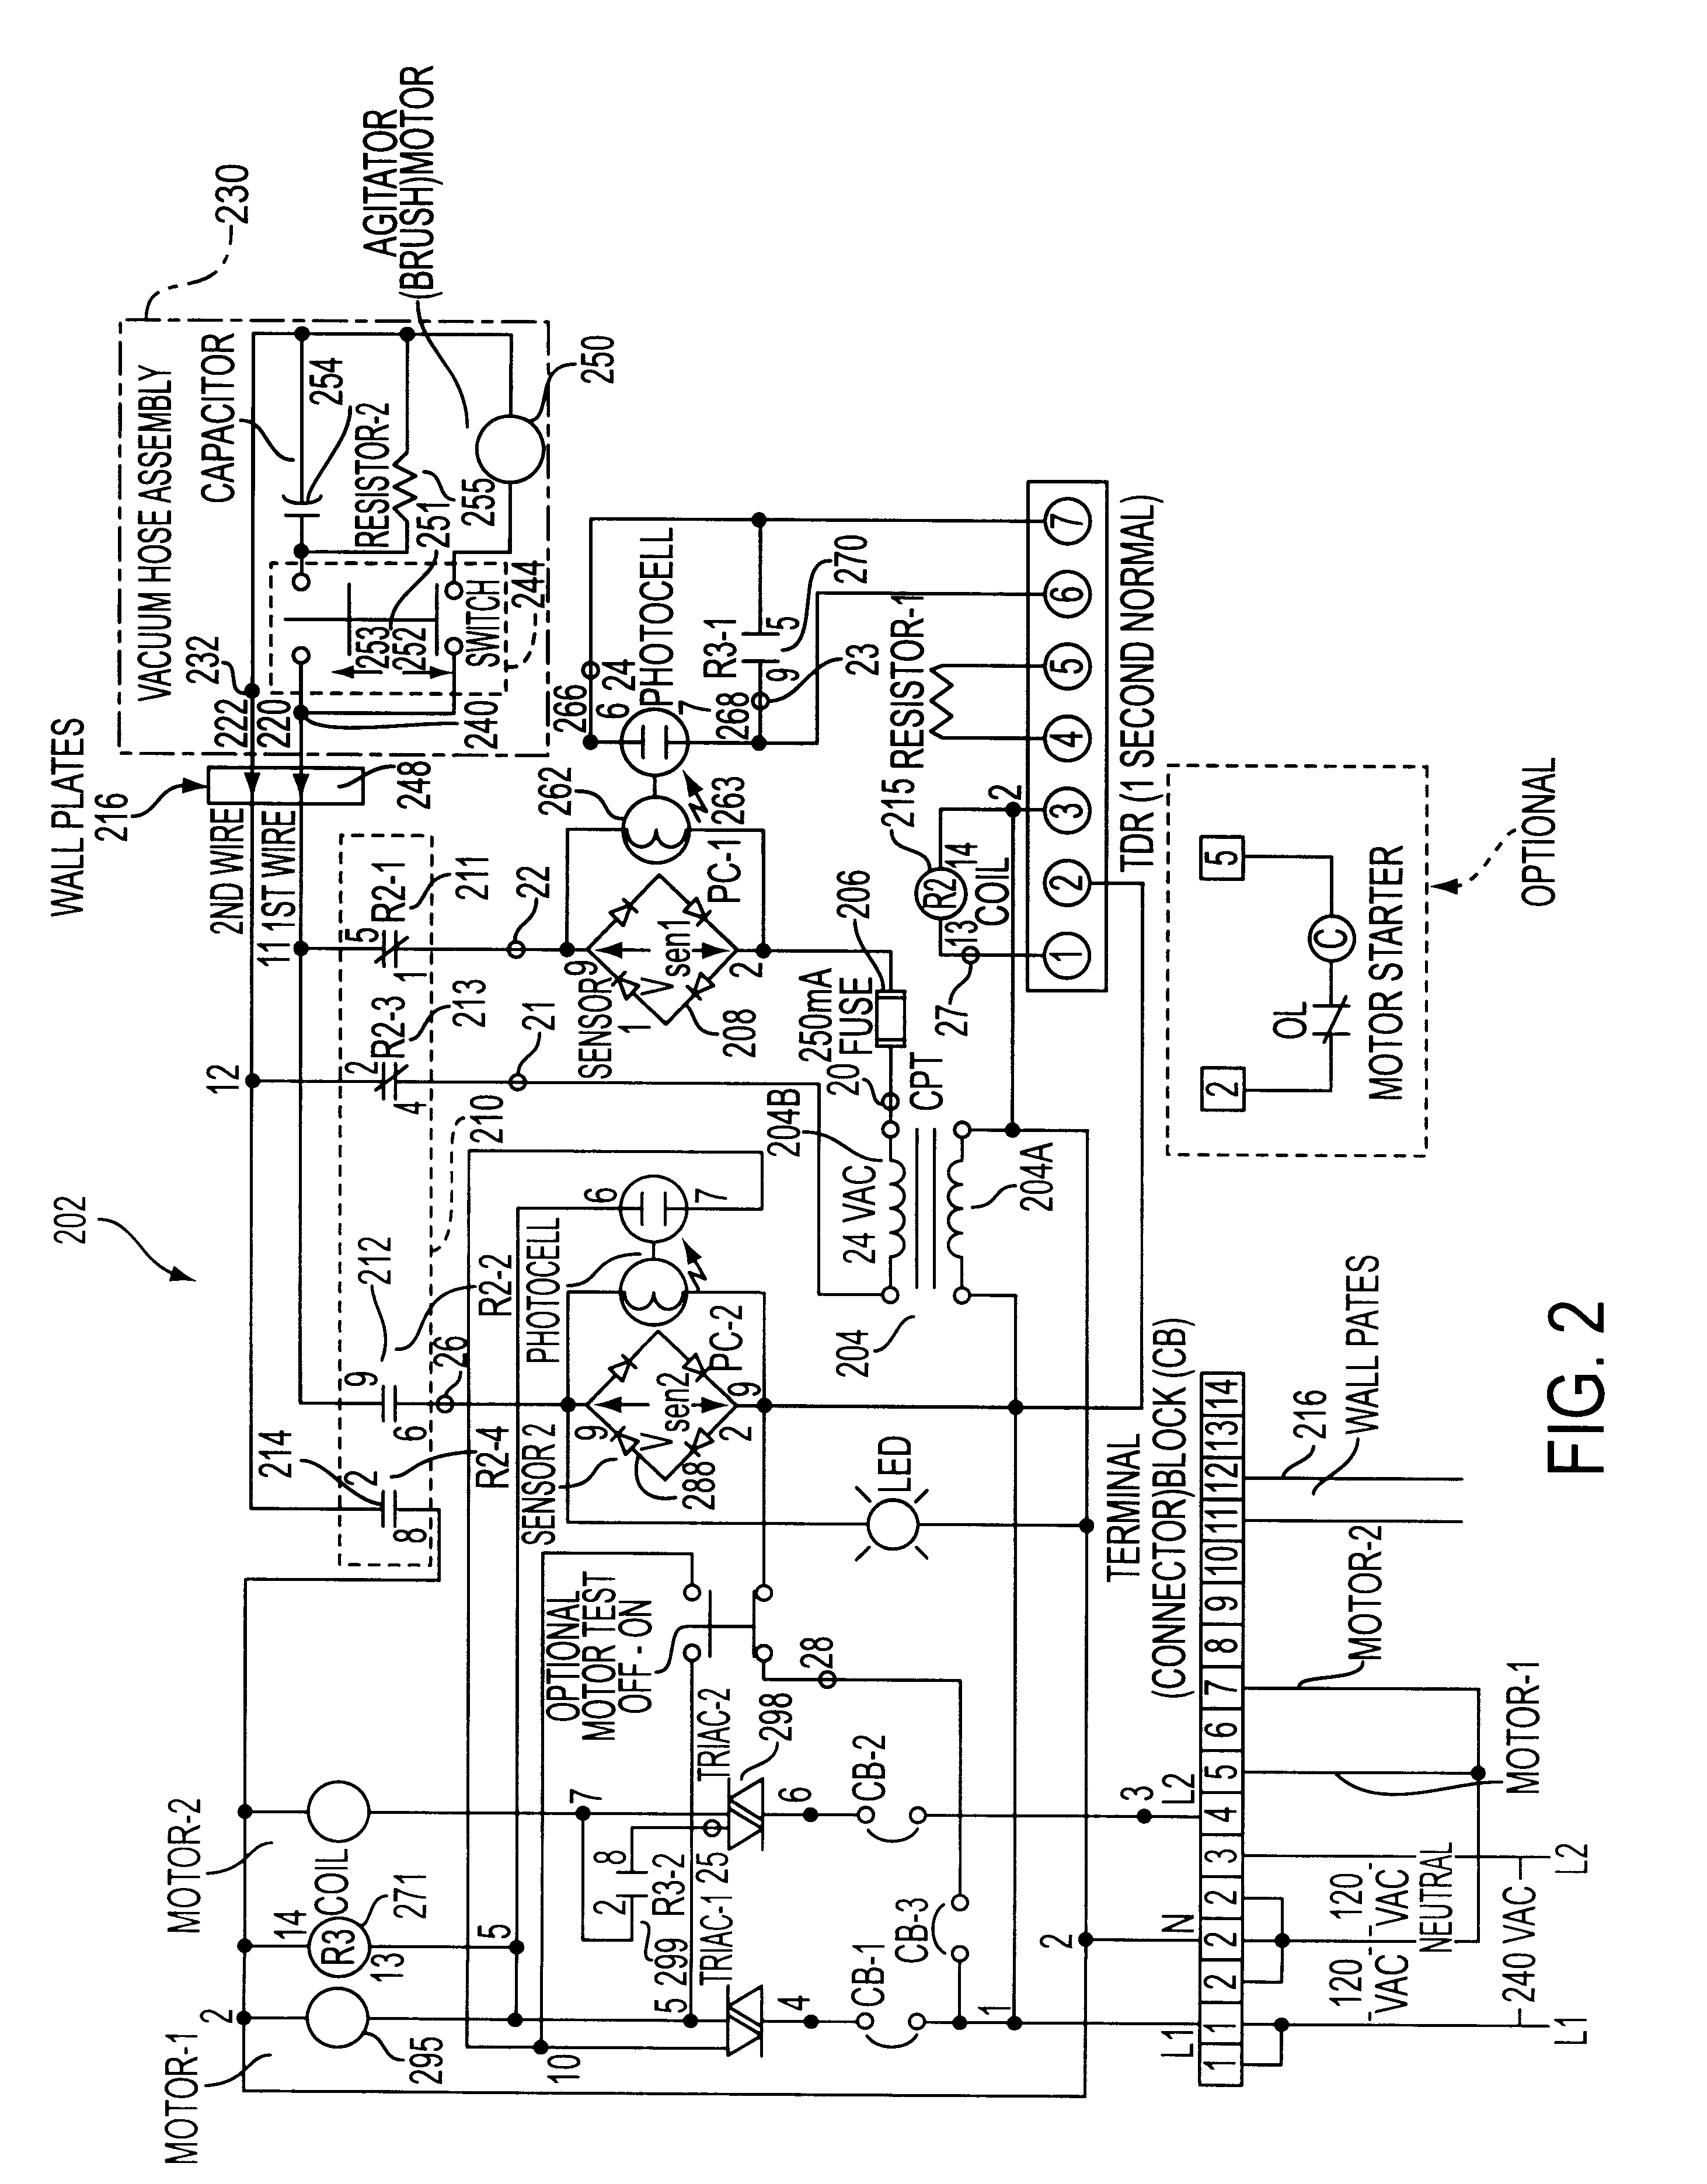 patent us6239576 safe class 2 motor control circuit and method 208 VAC Single Phase Wiring Diagram patent drawing